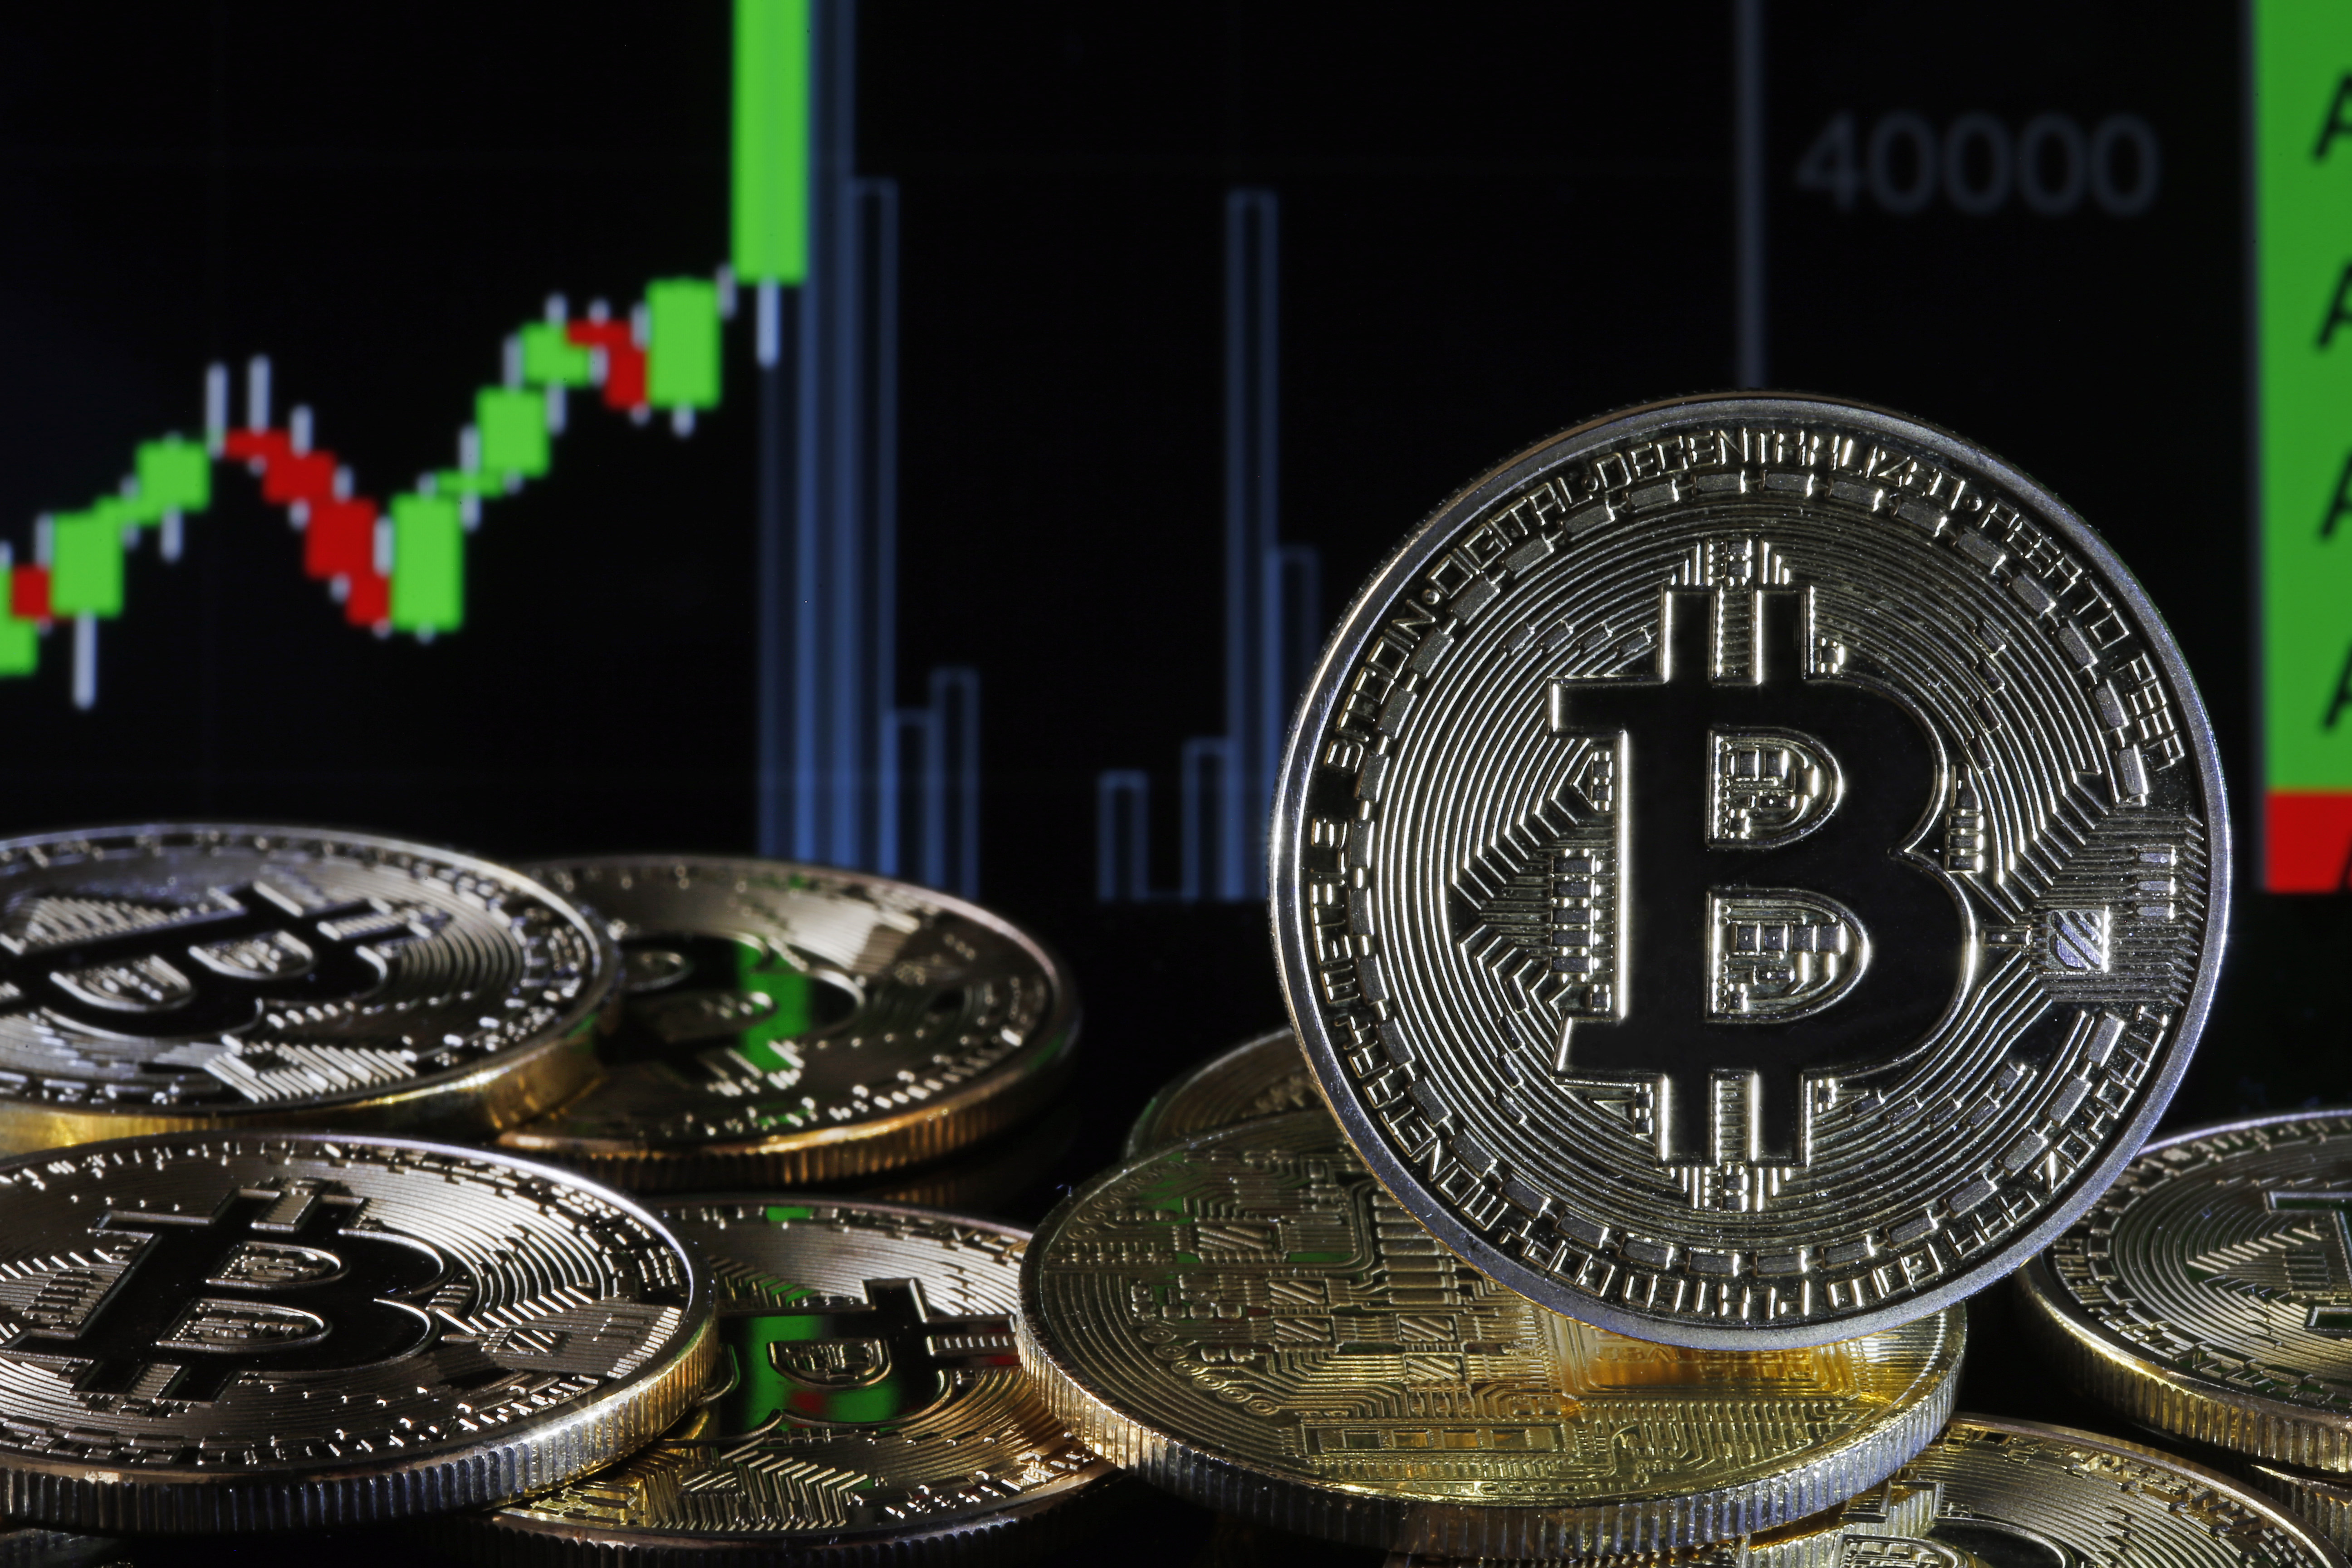 A beginner's guide to bitcoin: what is bitcoin? | MoneyWeek